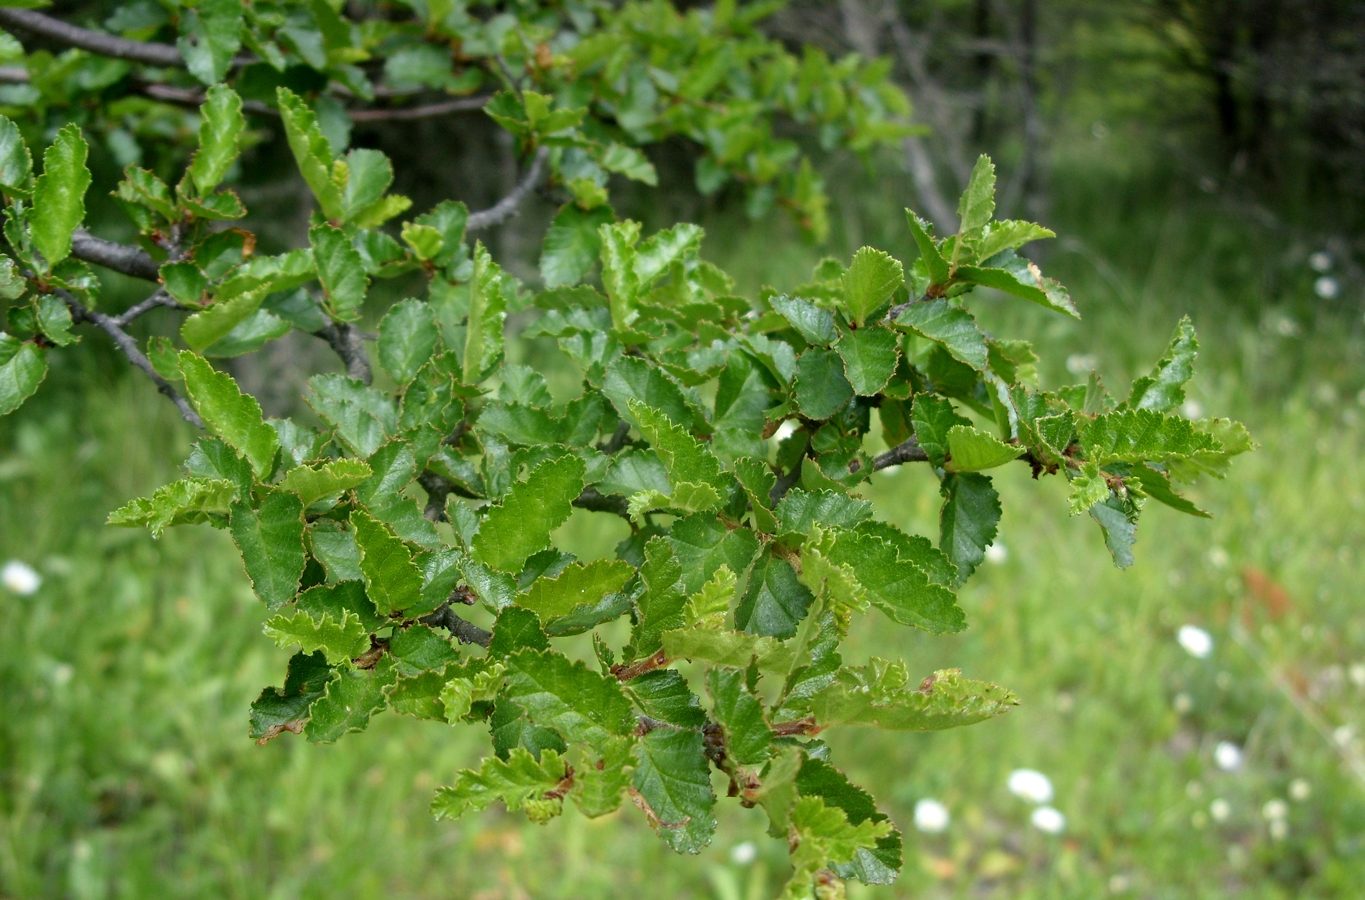 Nothofagus antarctica – rama con brotes. Licensed under Creative Commons Attribution-Share Alike 3.0 via Wikimedia Commons - http://commons.wikimedia.org/wiki/File:Nothofagus_antarctica_-_rama_con_brotes.JPG